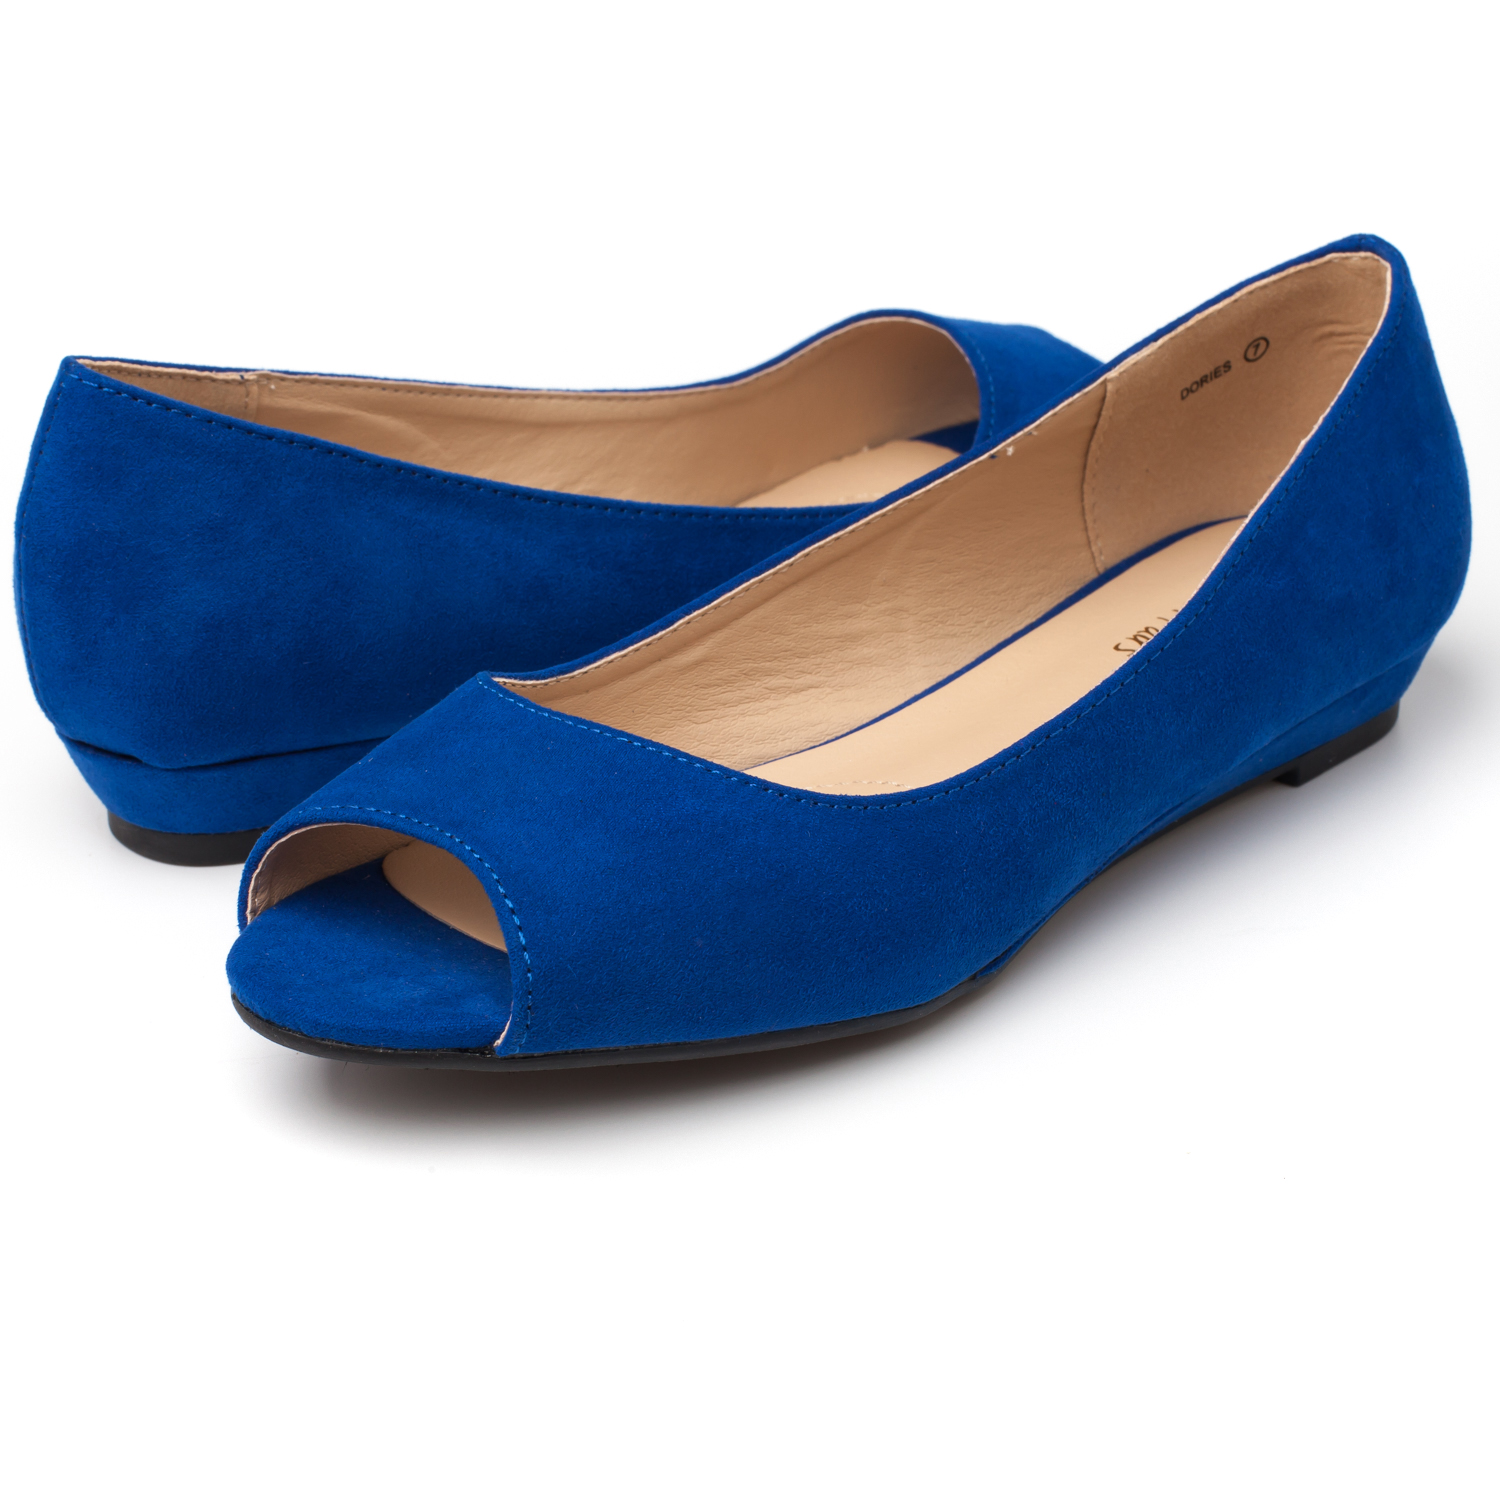 DREAM-PAIRS-Womens-Ballet-Flats-Low-Heel-Open-Toe-Slip-On-Dress-Flat-Shoes thumbnail 11